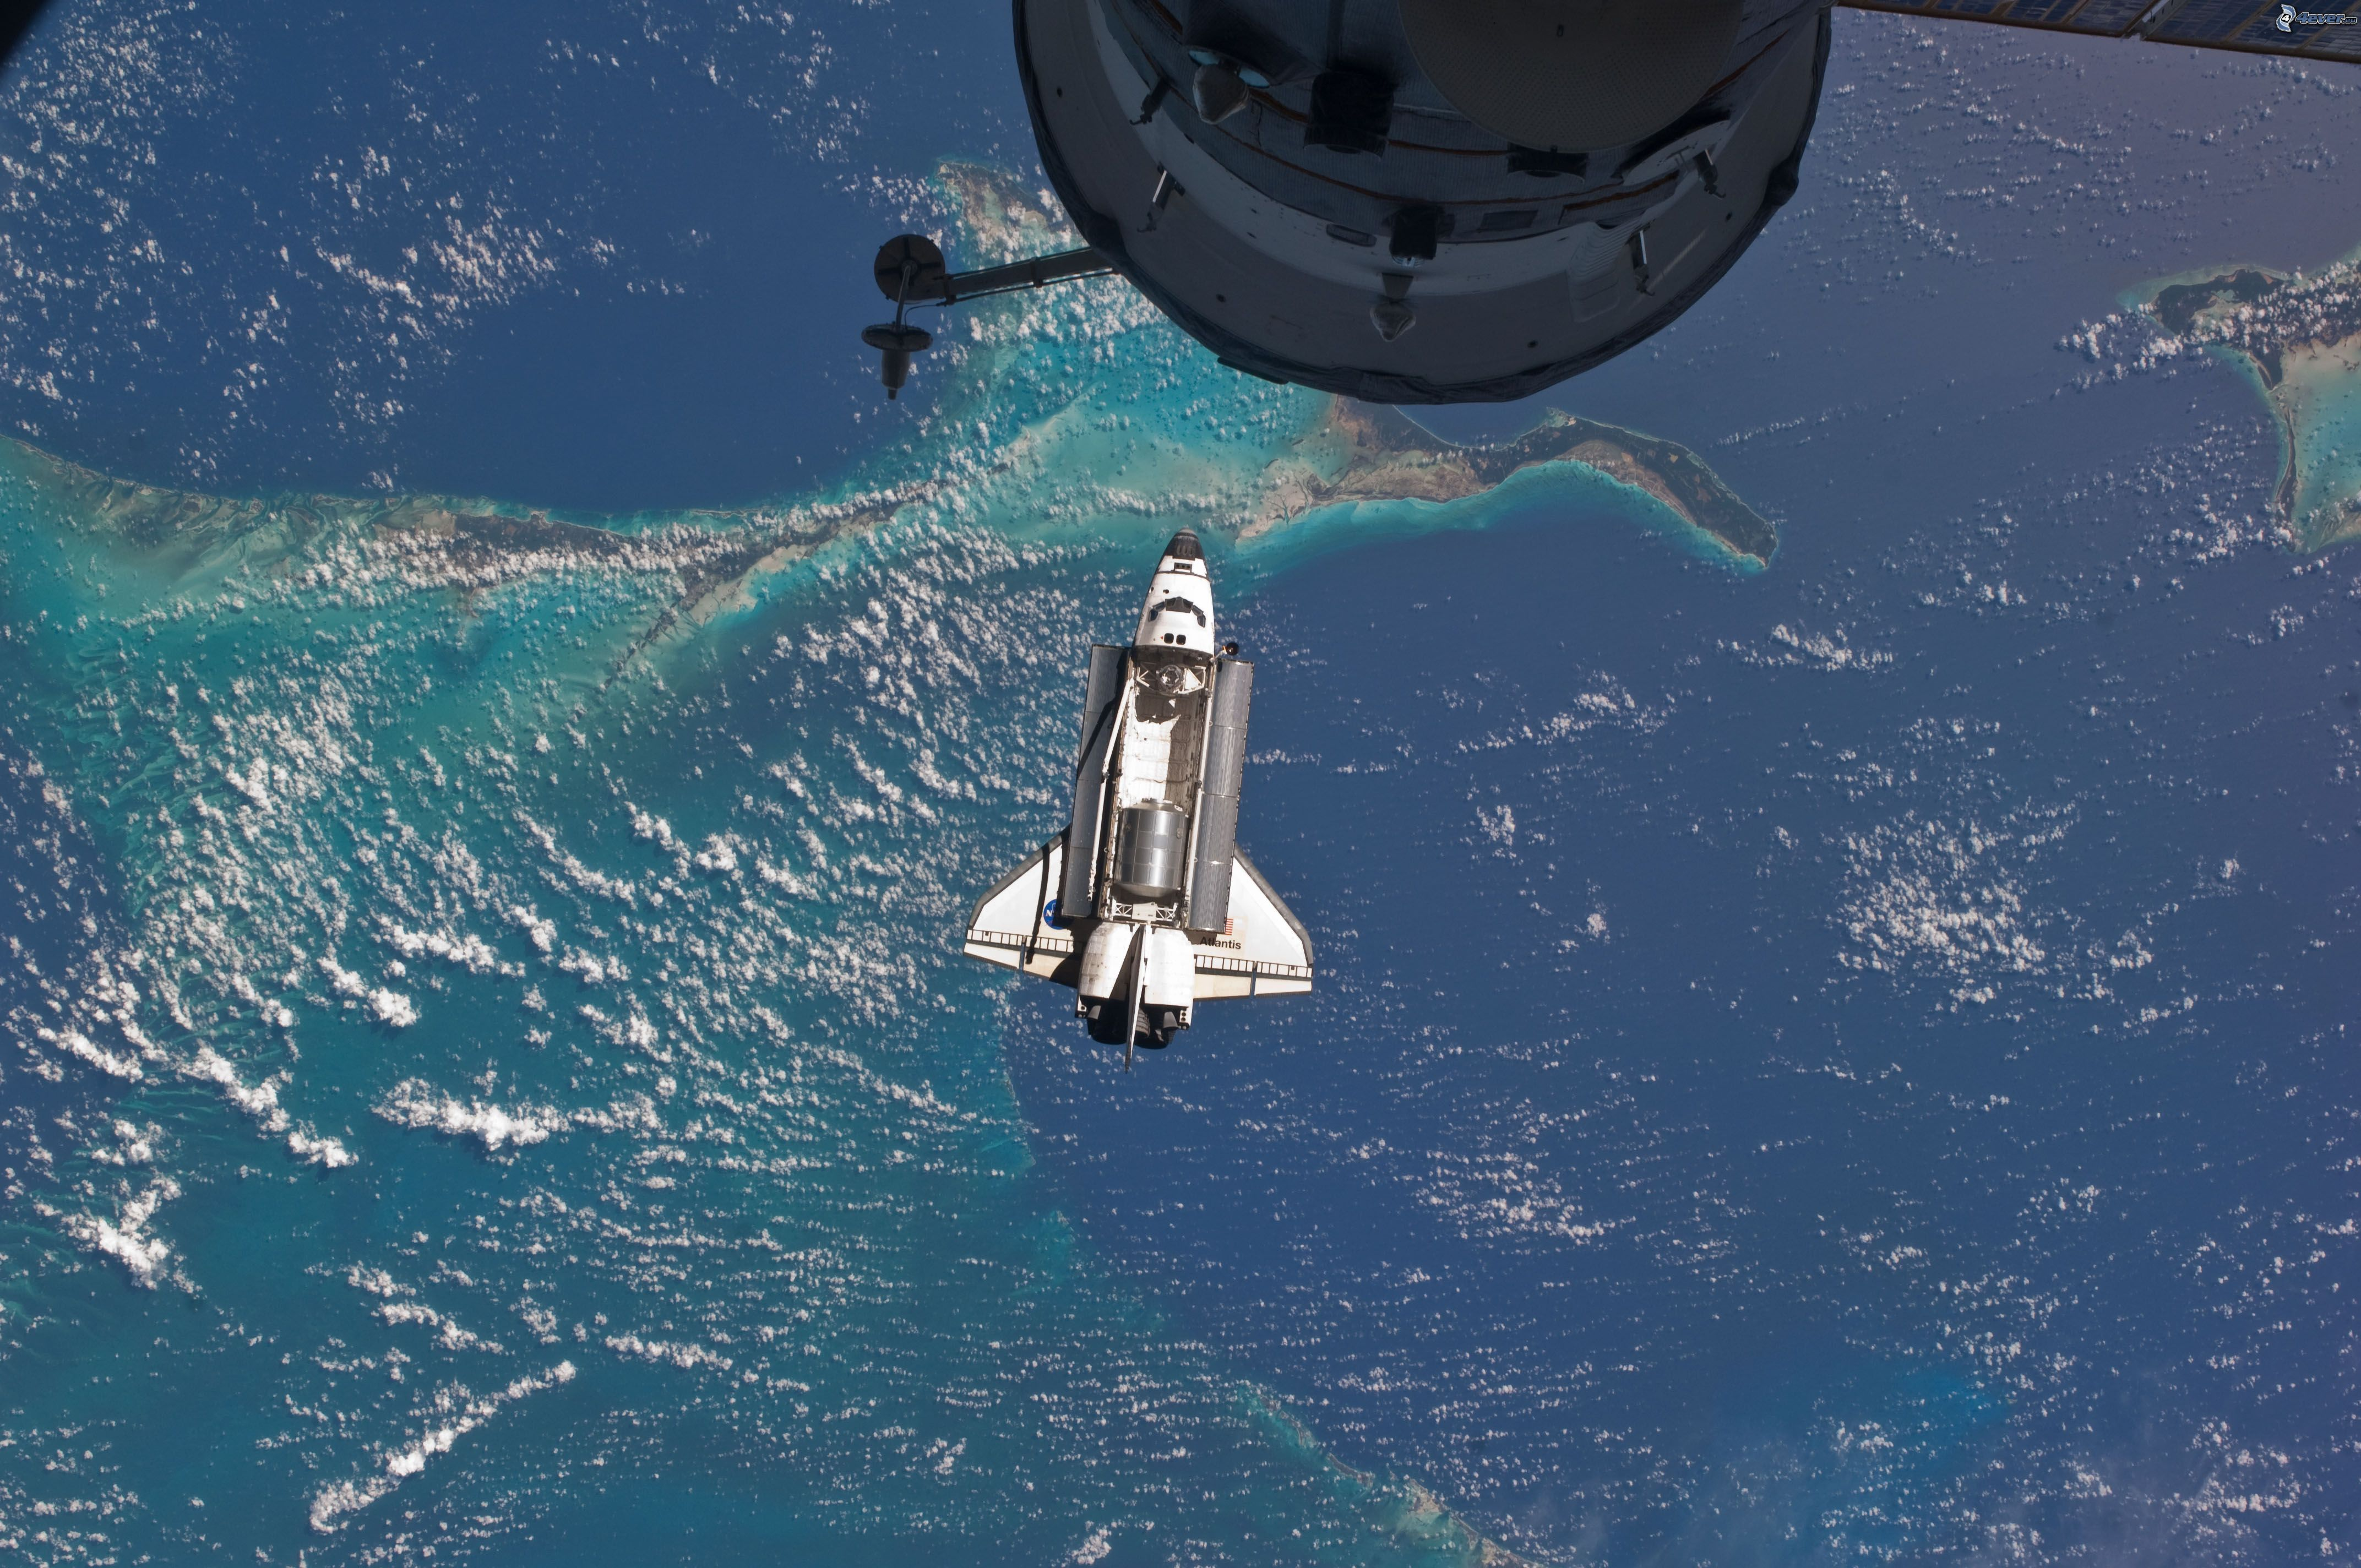 shuttle launch from space station - photo #29